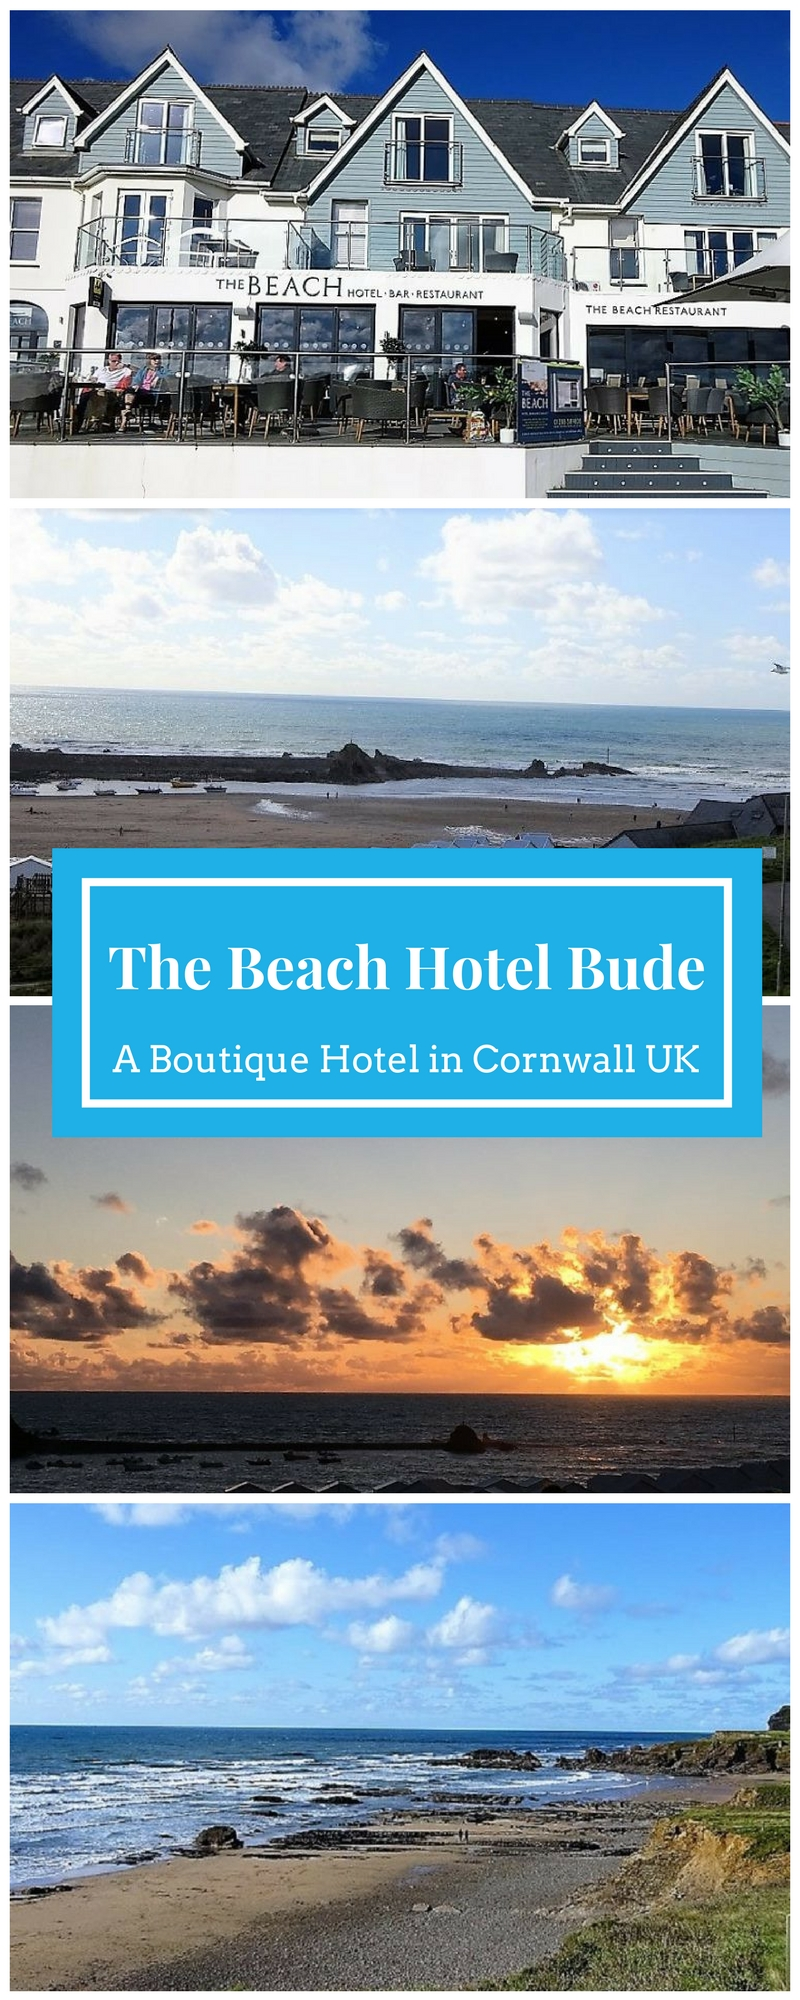 Beach Hotel, Bude, Cornwall - Boutique Hotel in Cornwall UK